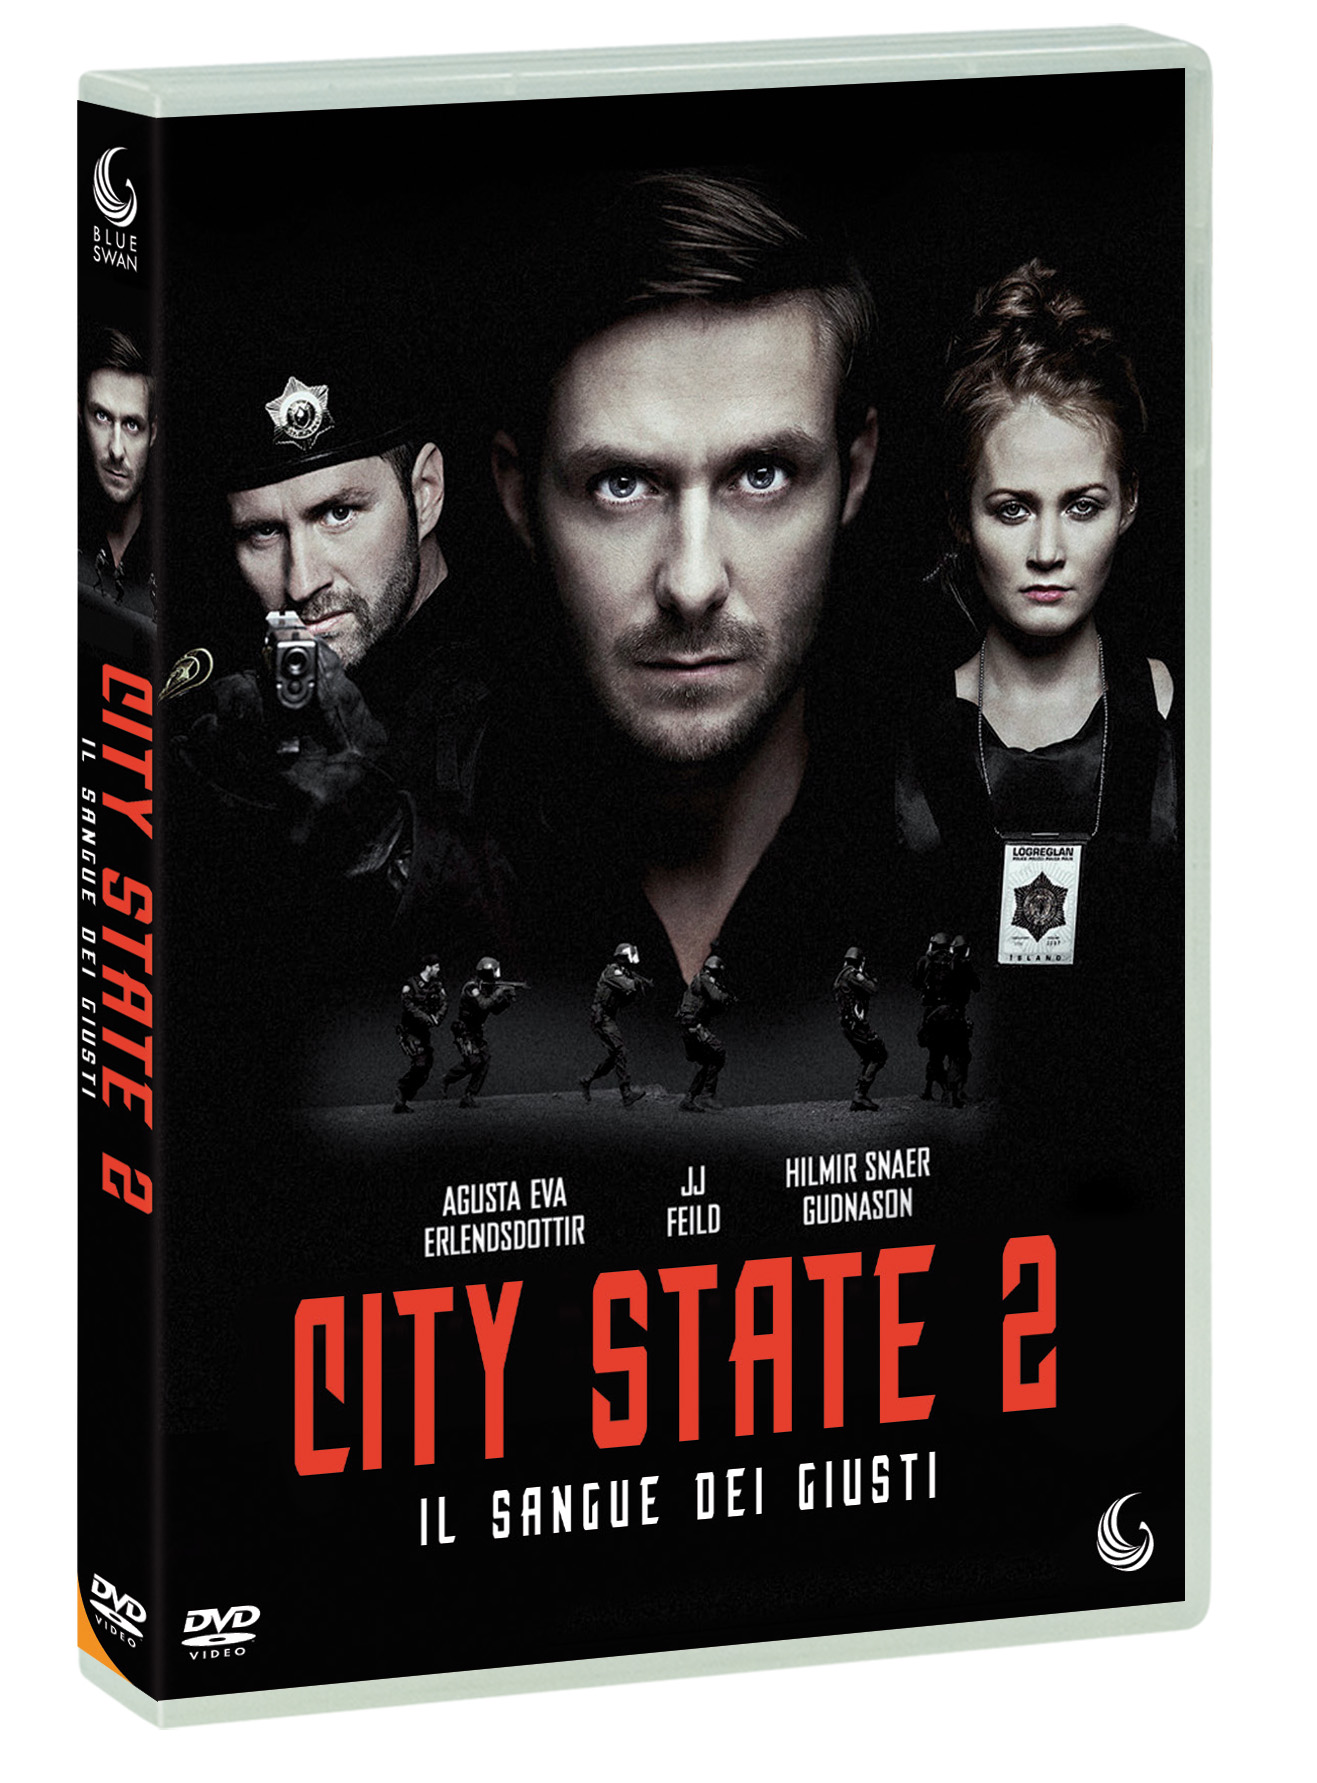 CITY STATE 2 (DVD)